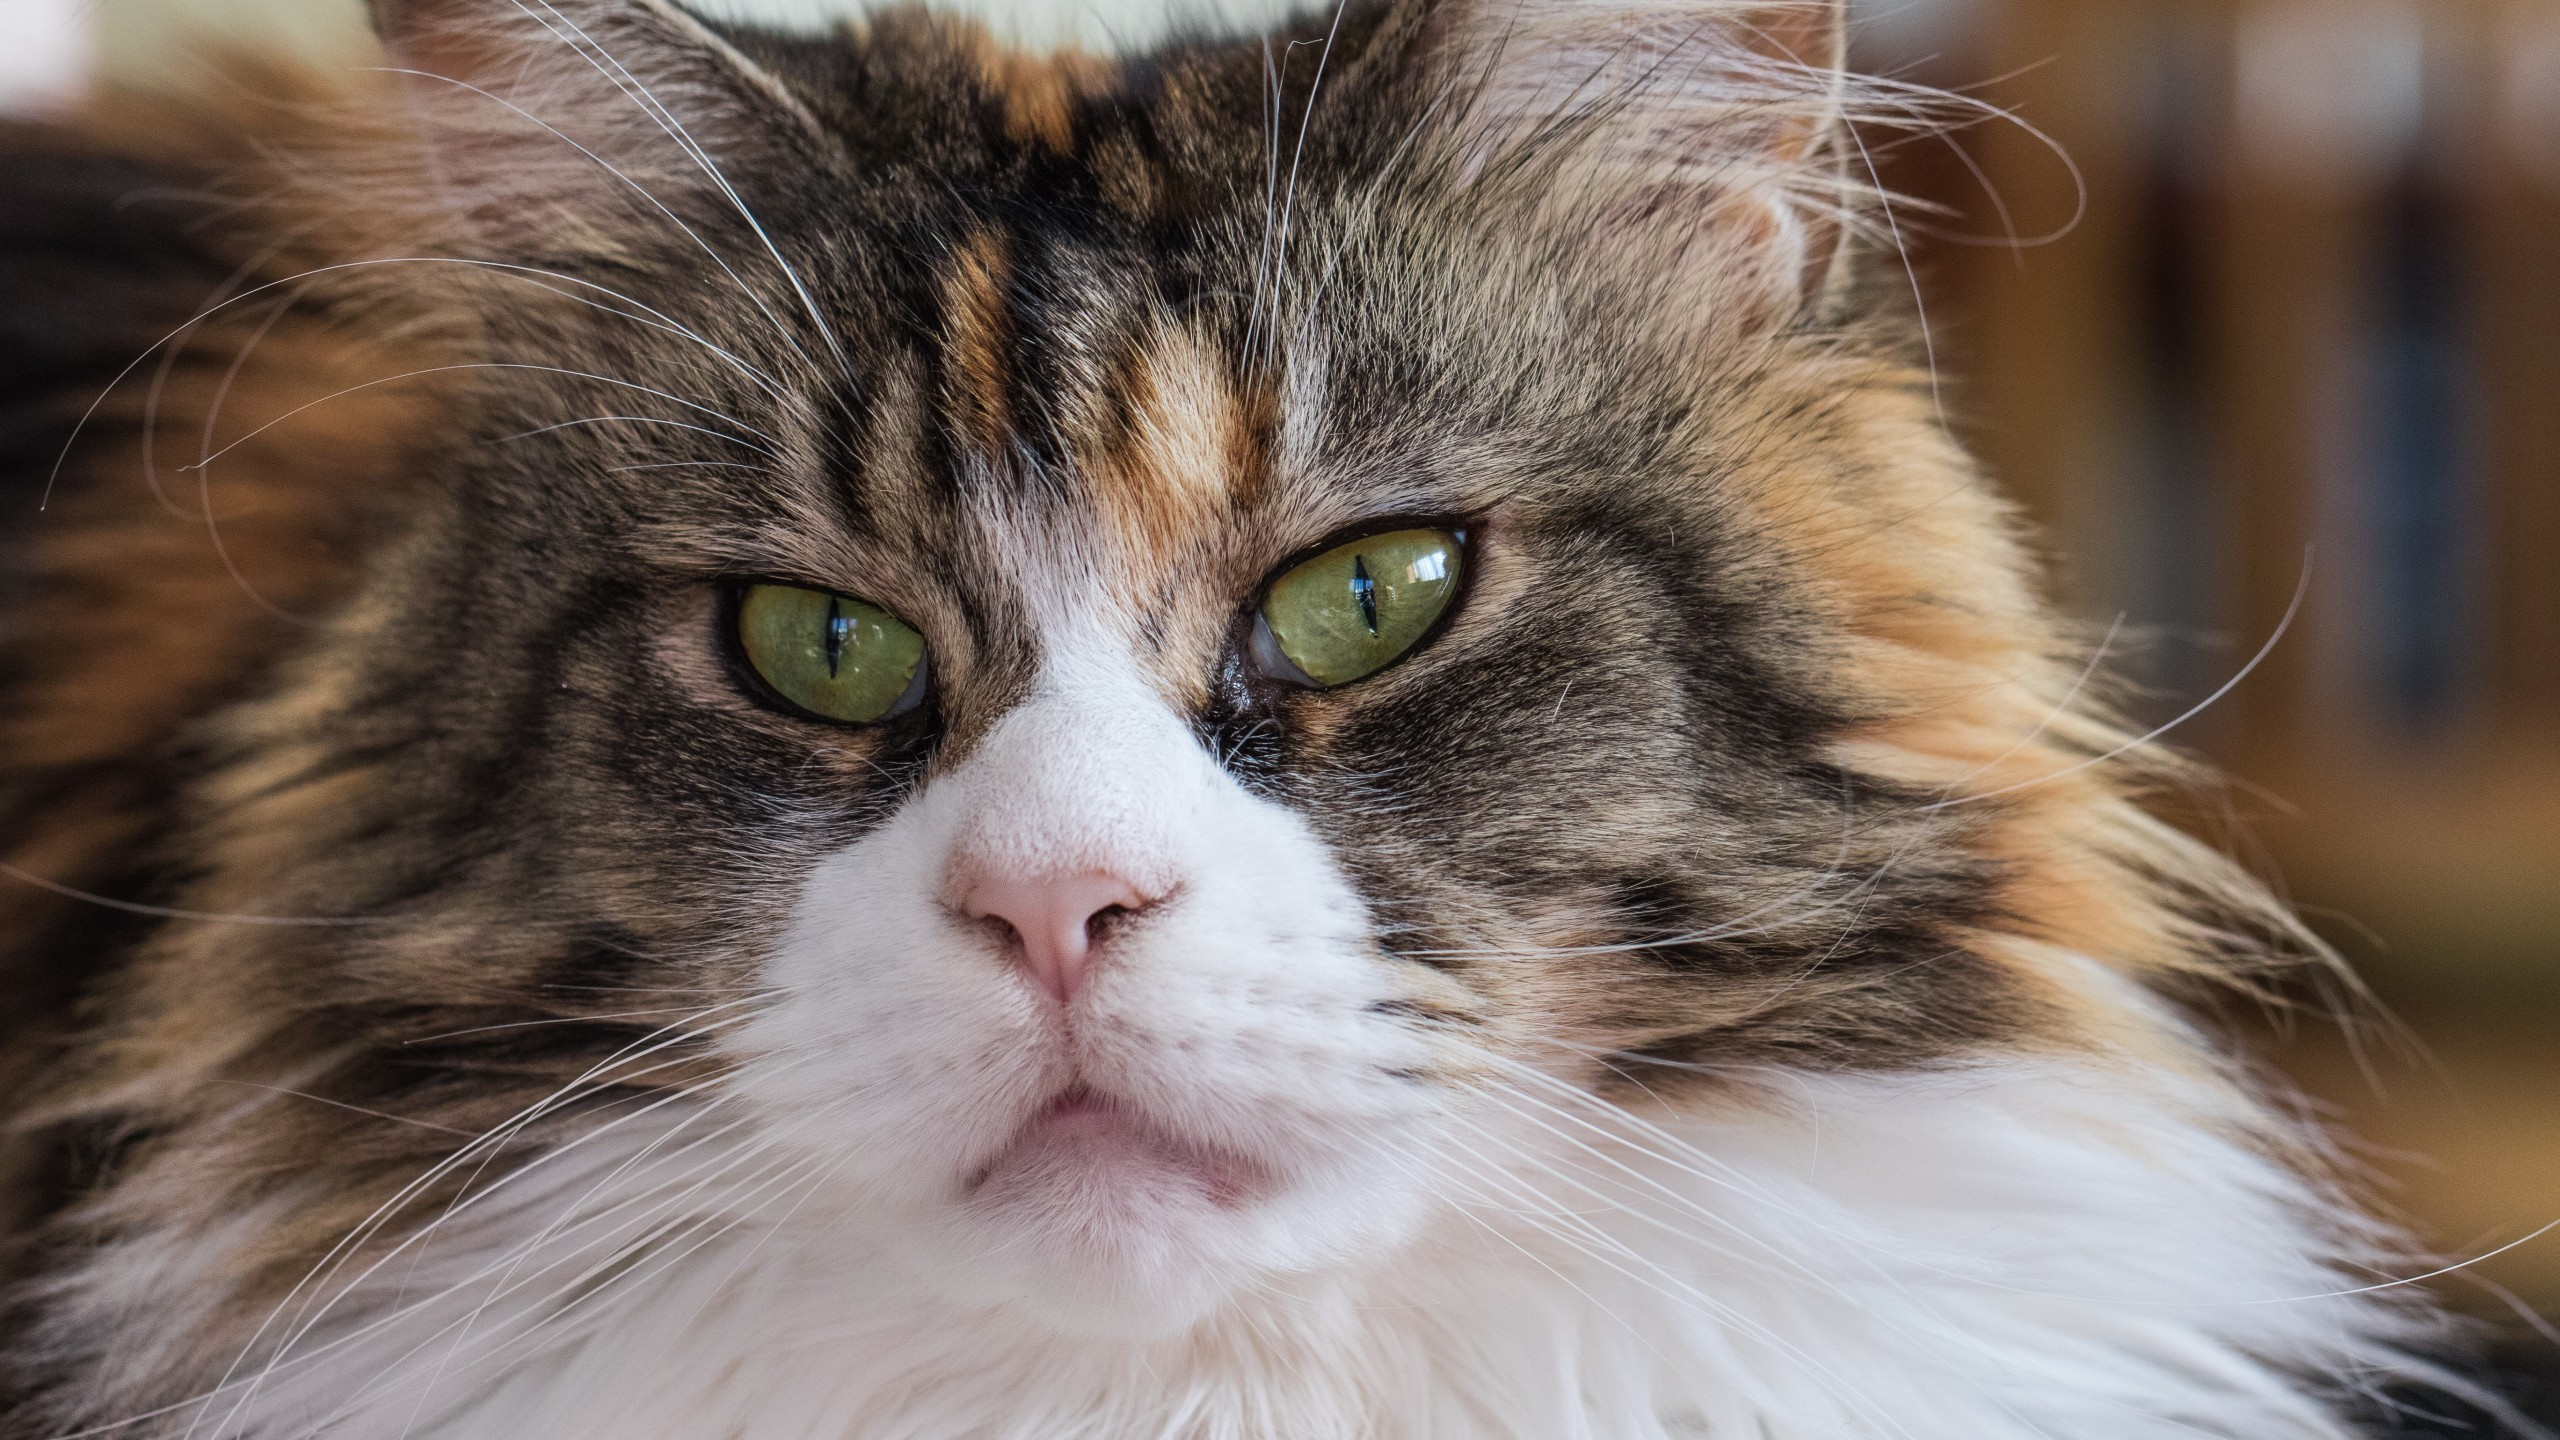 Res: 2560x1440, Maine Coon, Fluffy, Gaze, Muzzle, Cats